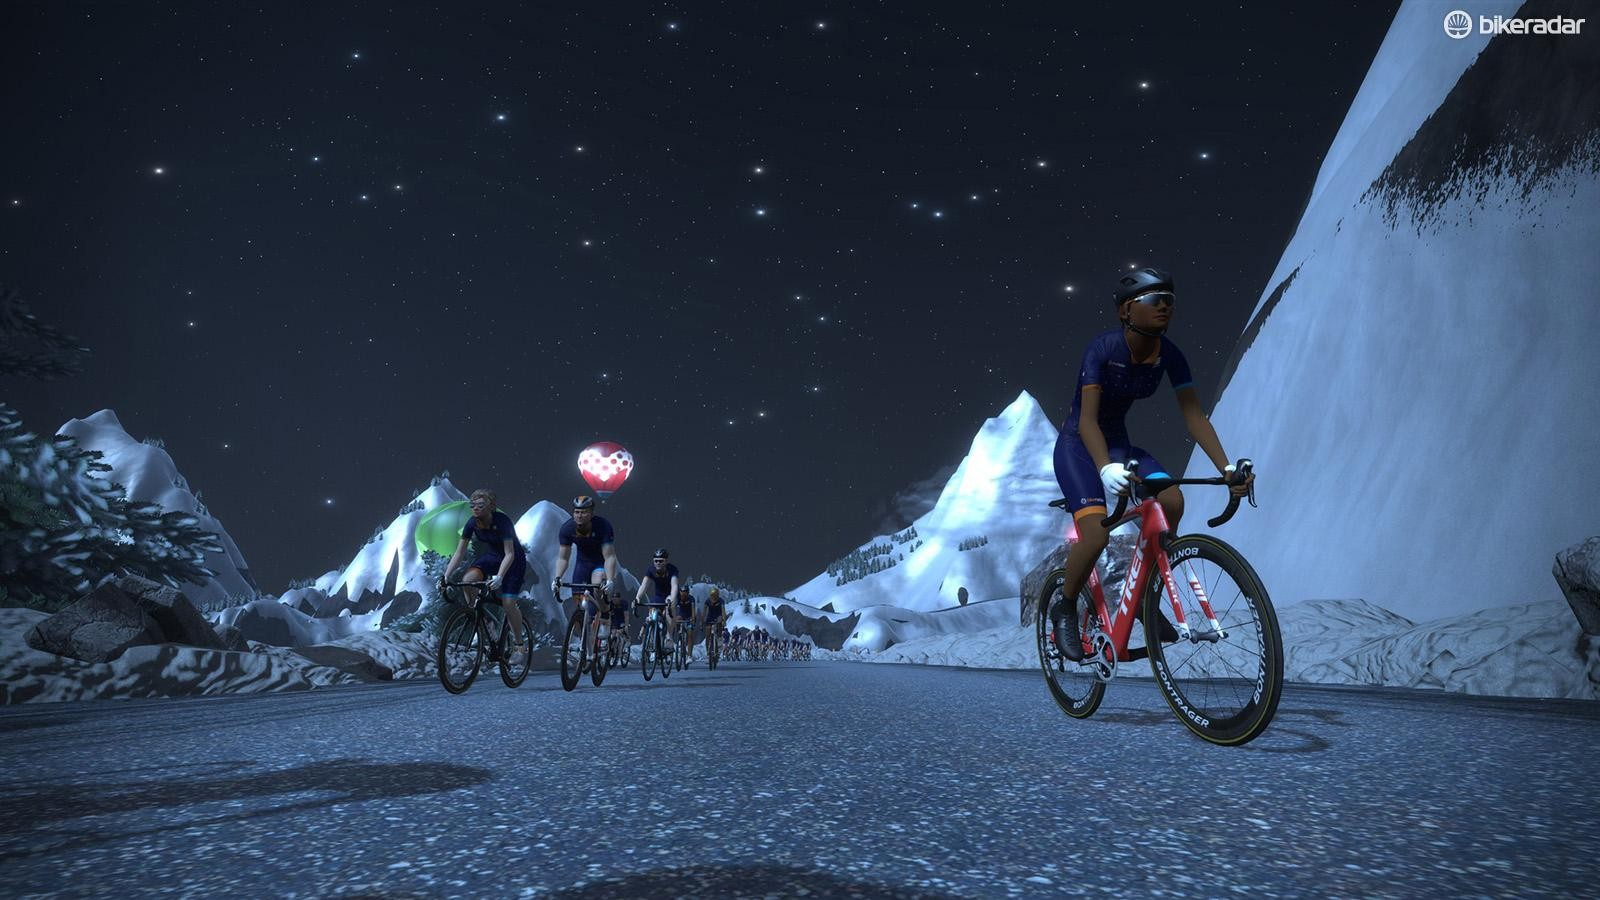 A group ride in Watopia